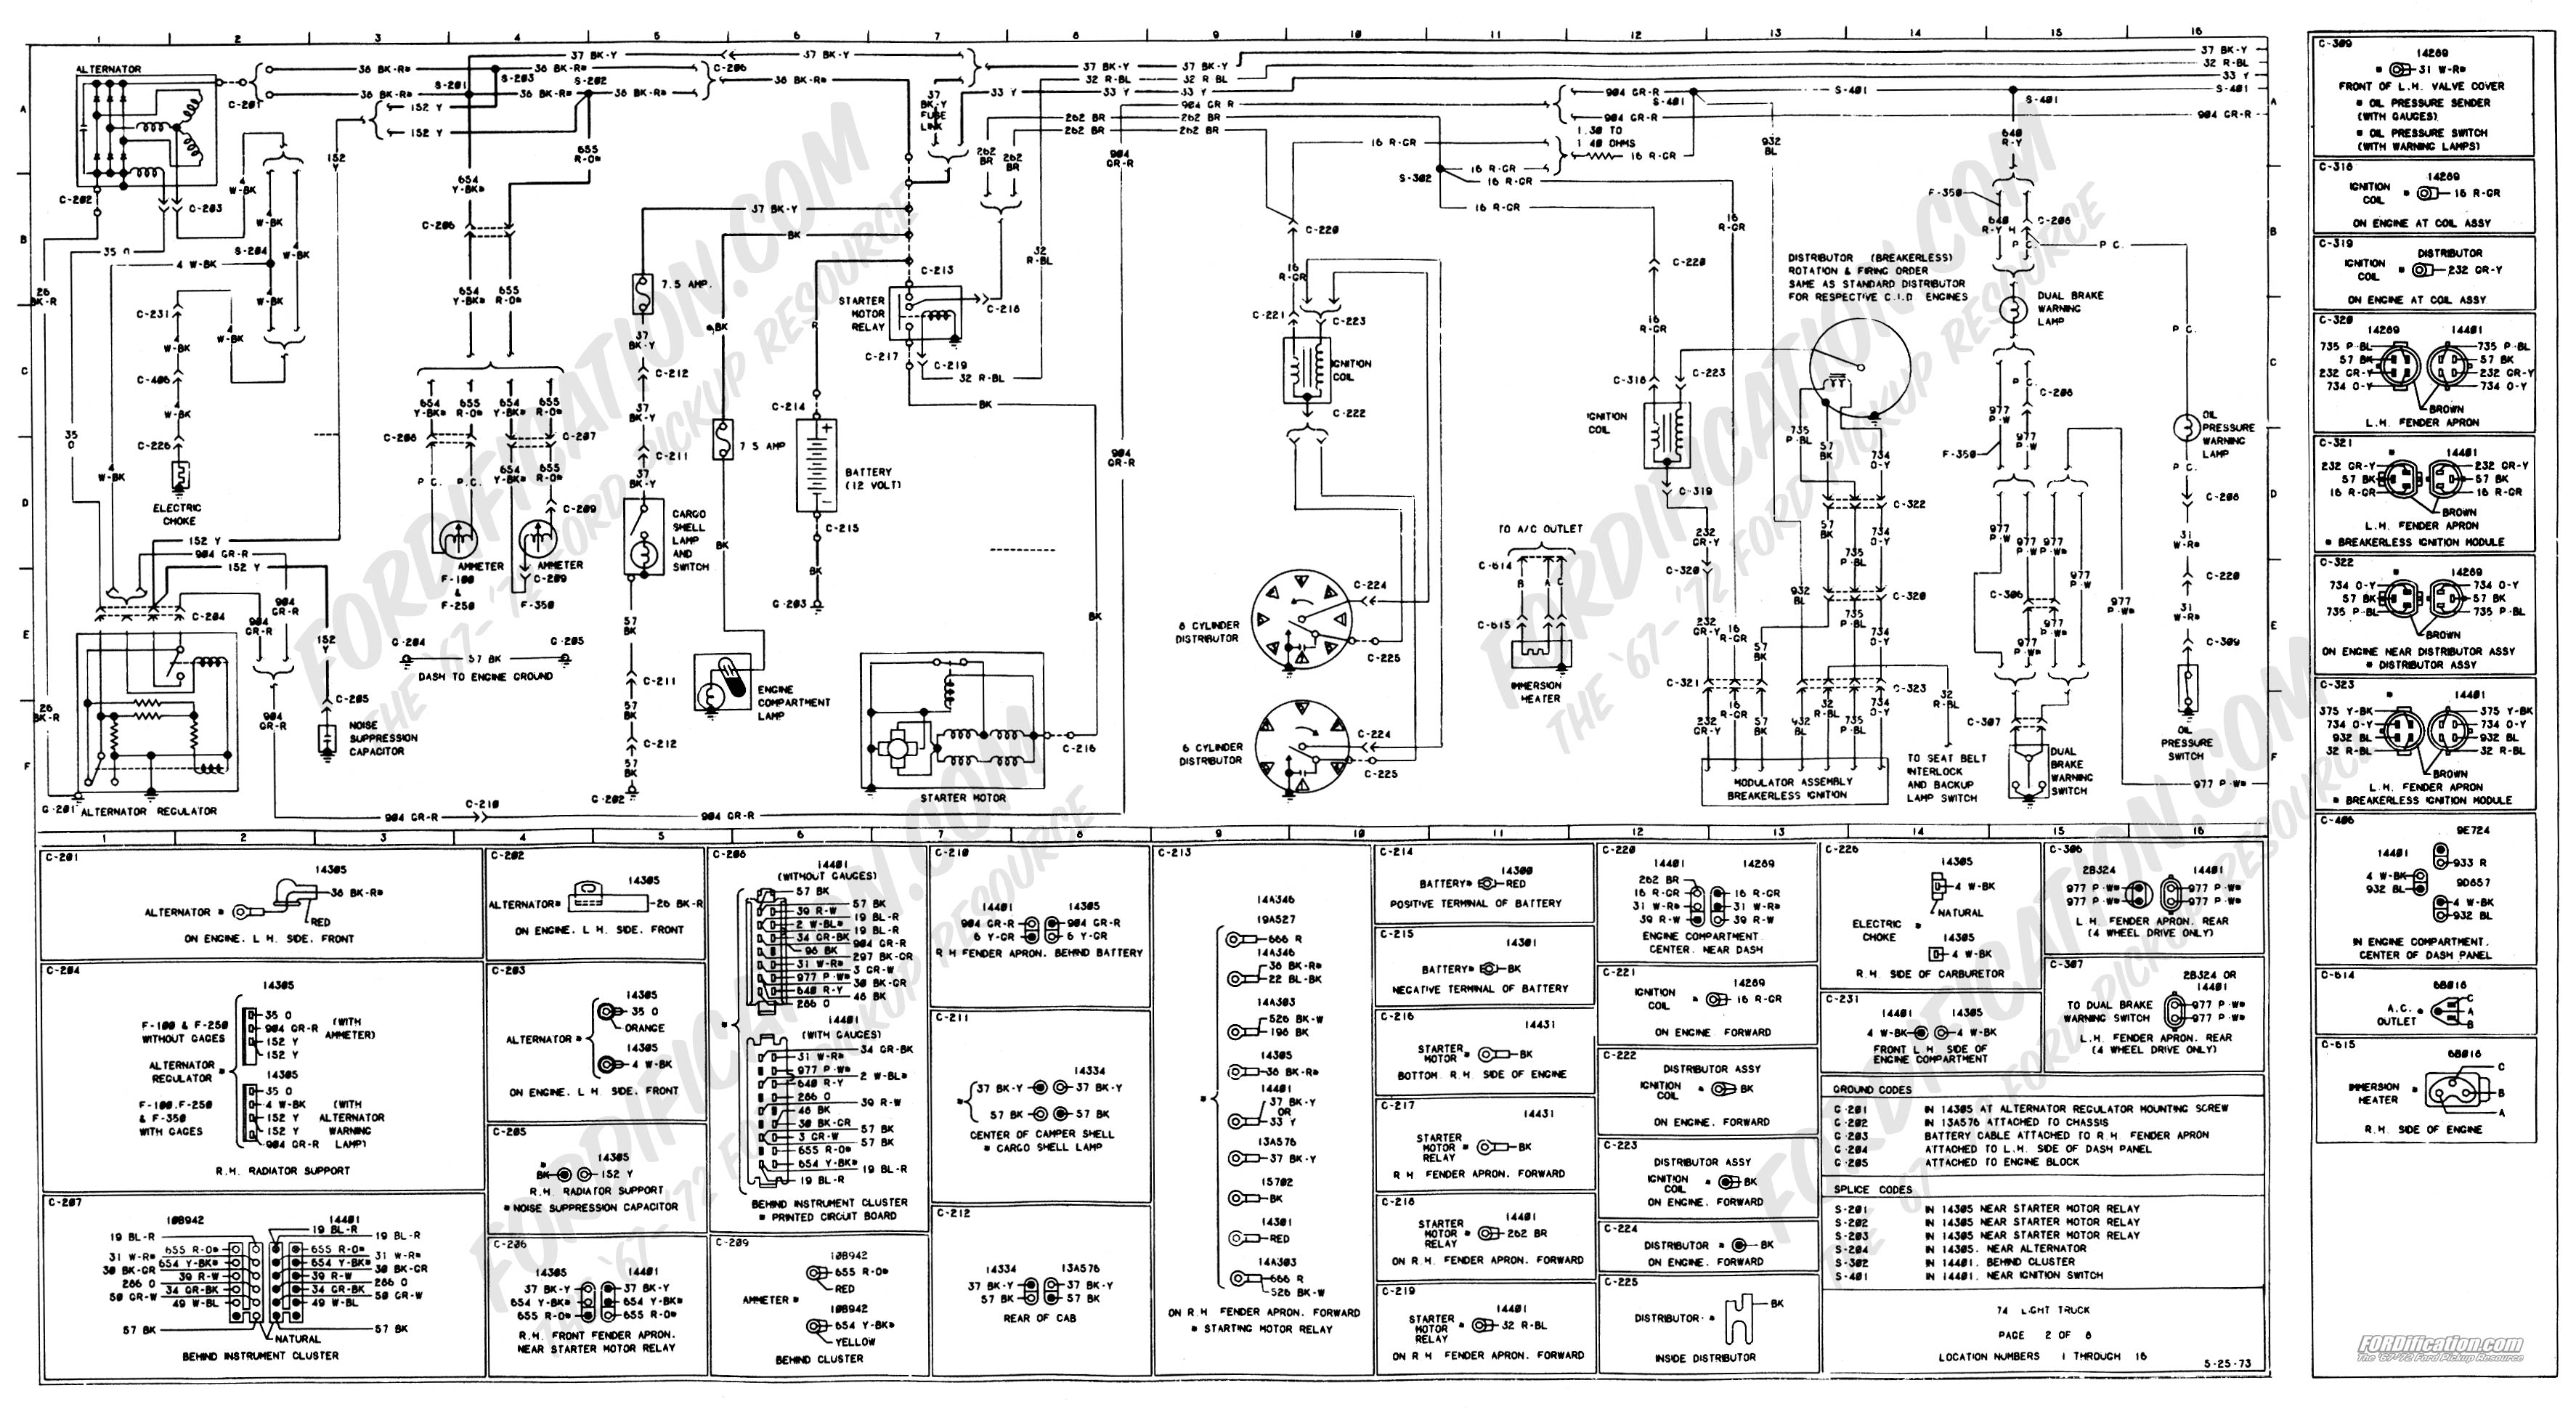 F250 Wiring Diagram Another Diagrams 2009 F350 1973 1979 Ford Truck Schematics Fordification Net Rh 1999 Speakers Door Panel